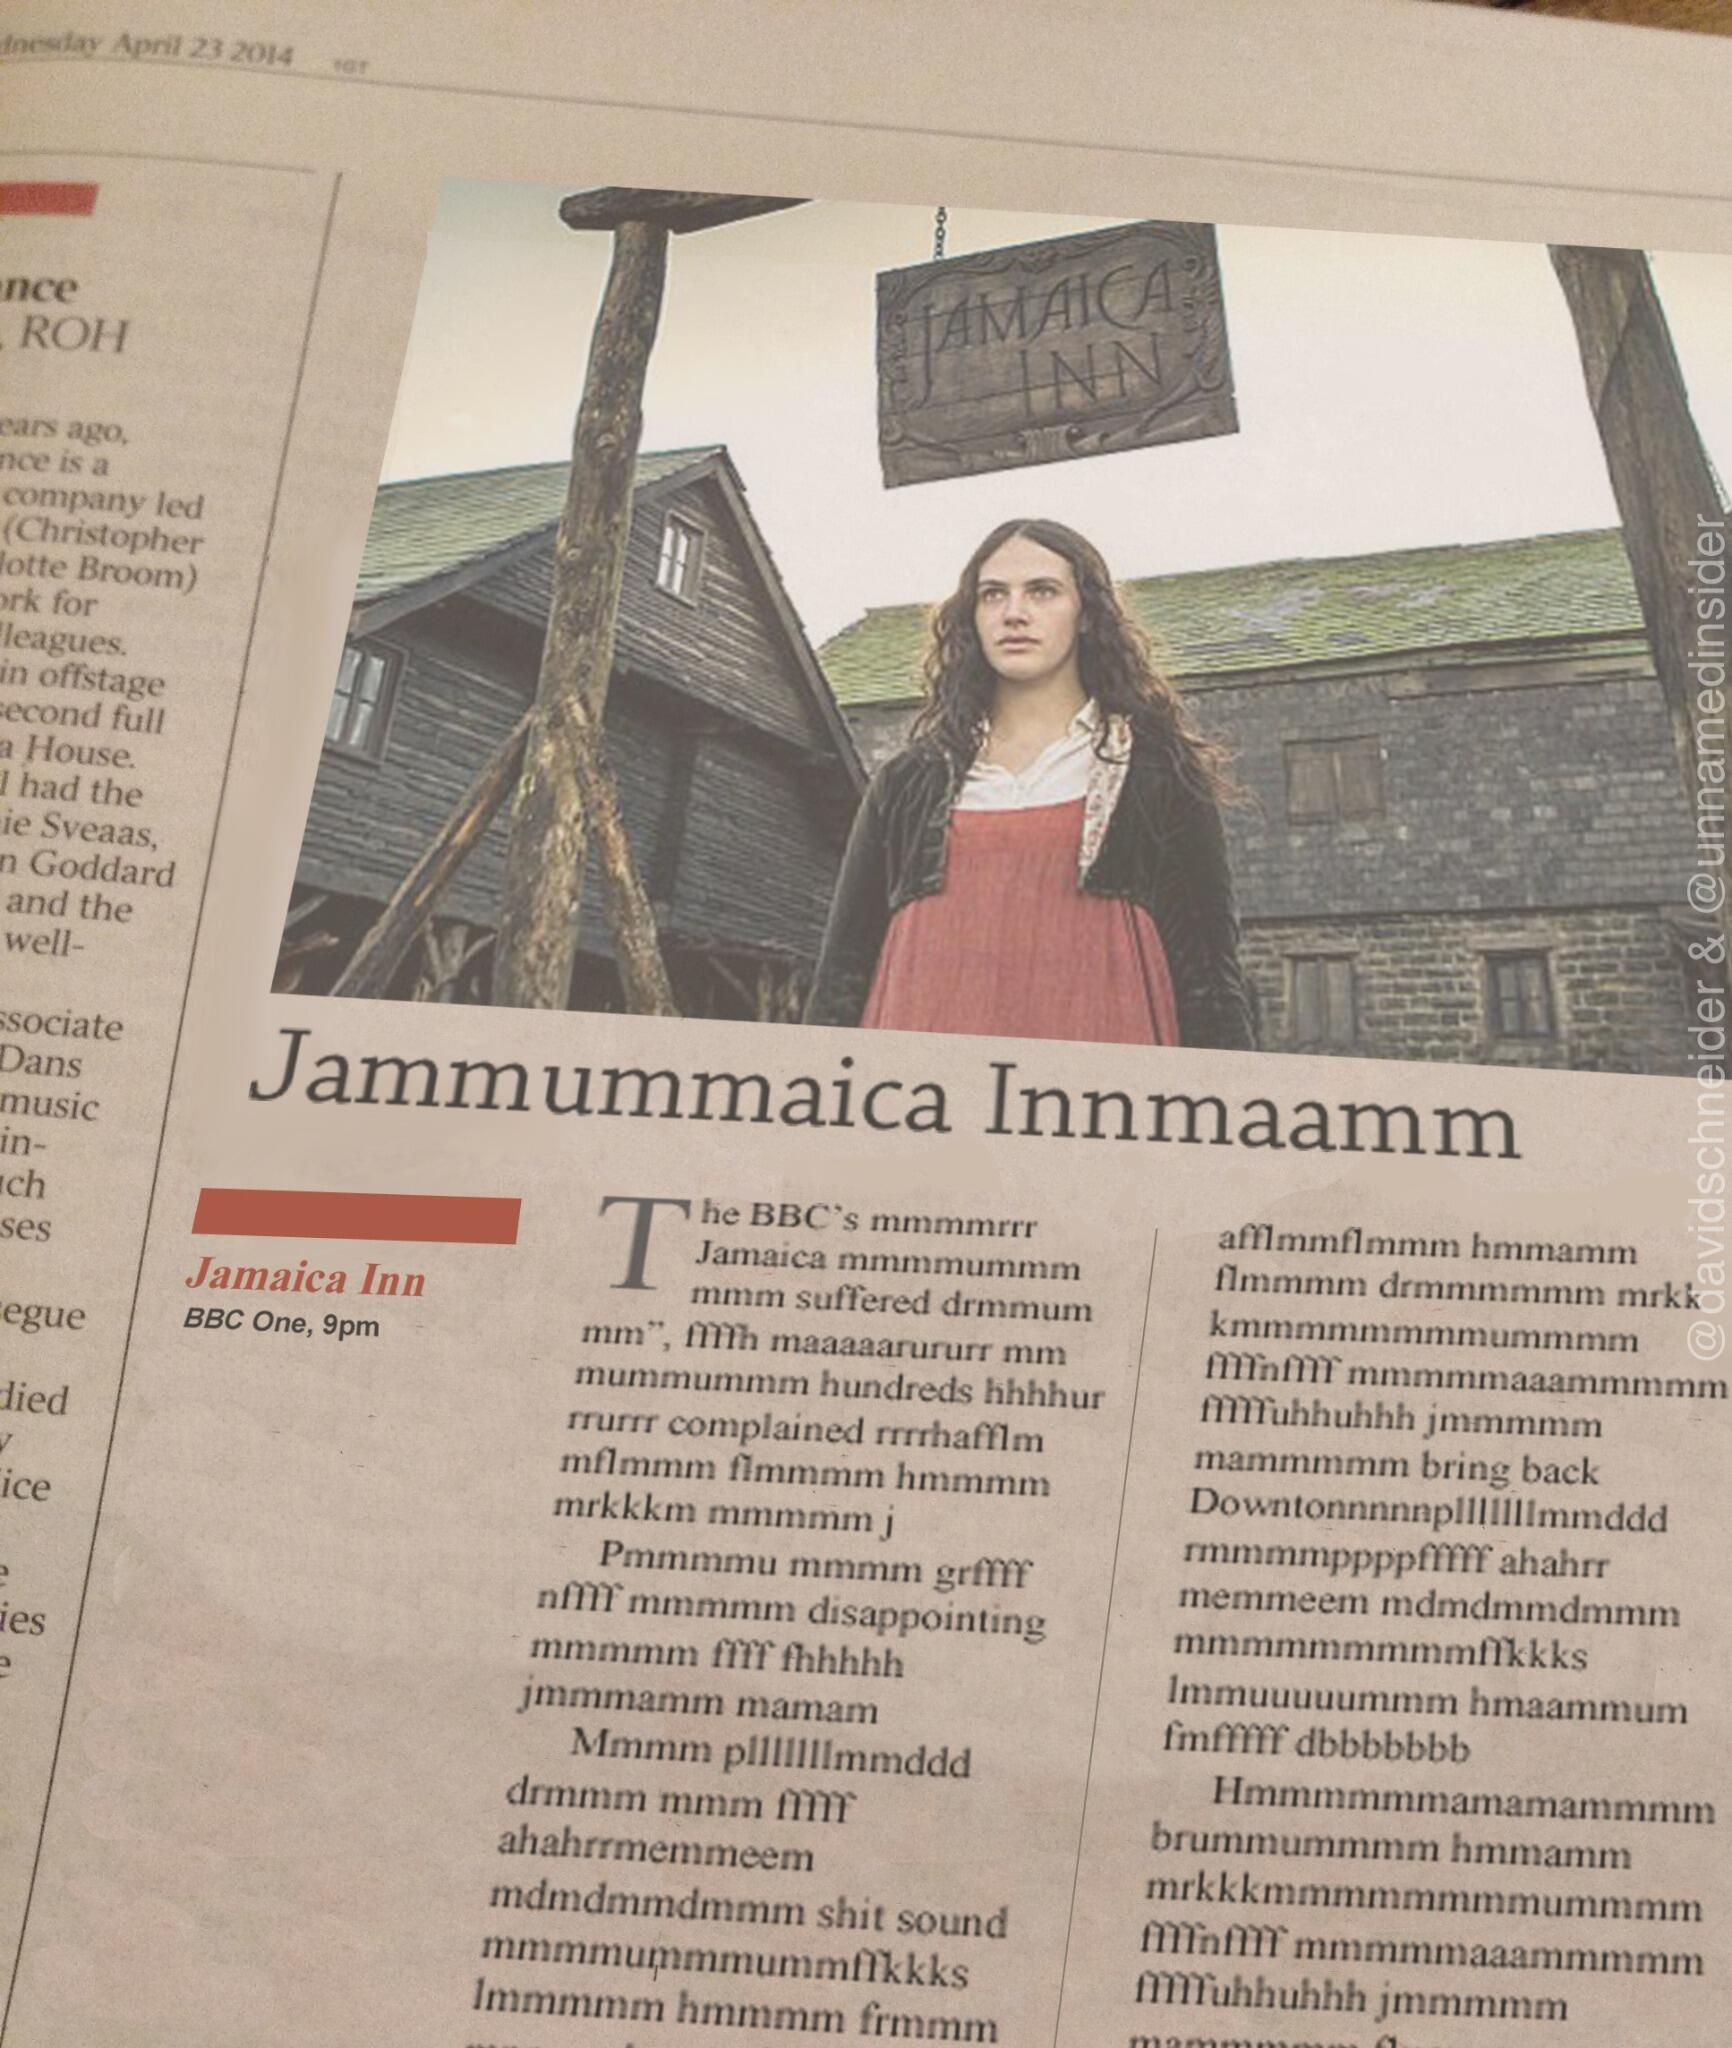 This review in the Times totally nails the technical problems of #JamaicaInn http://t.co/24y1kX6AfG